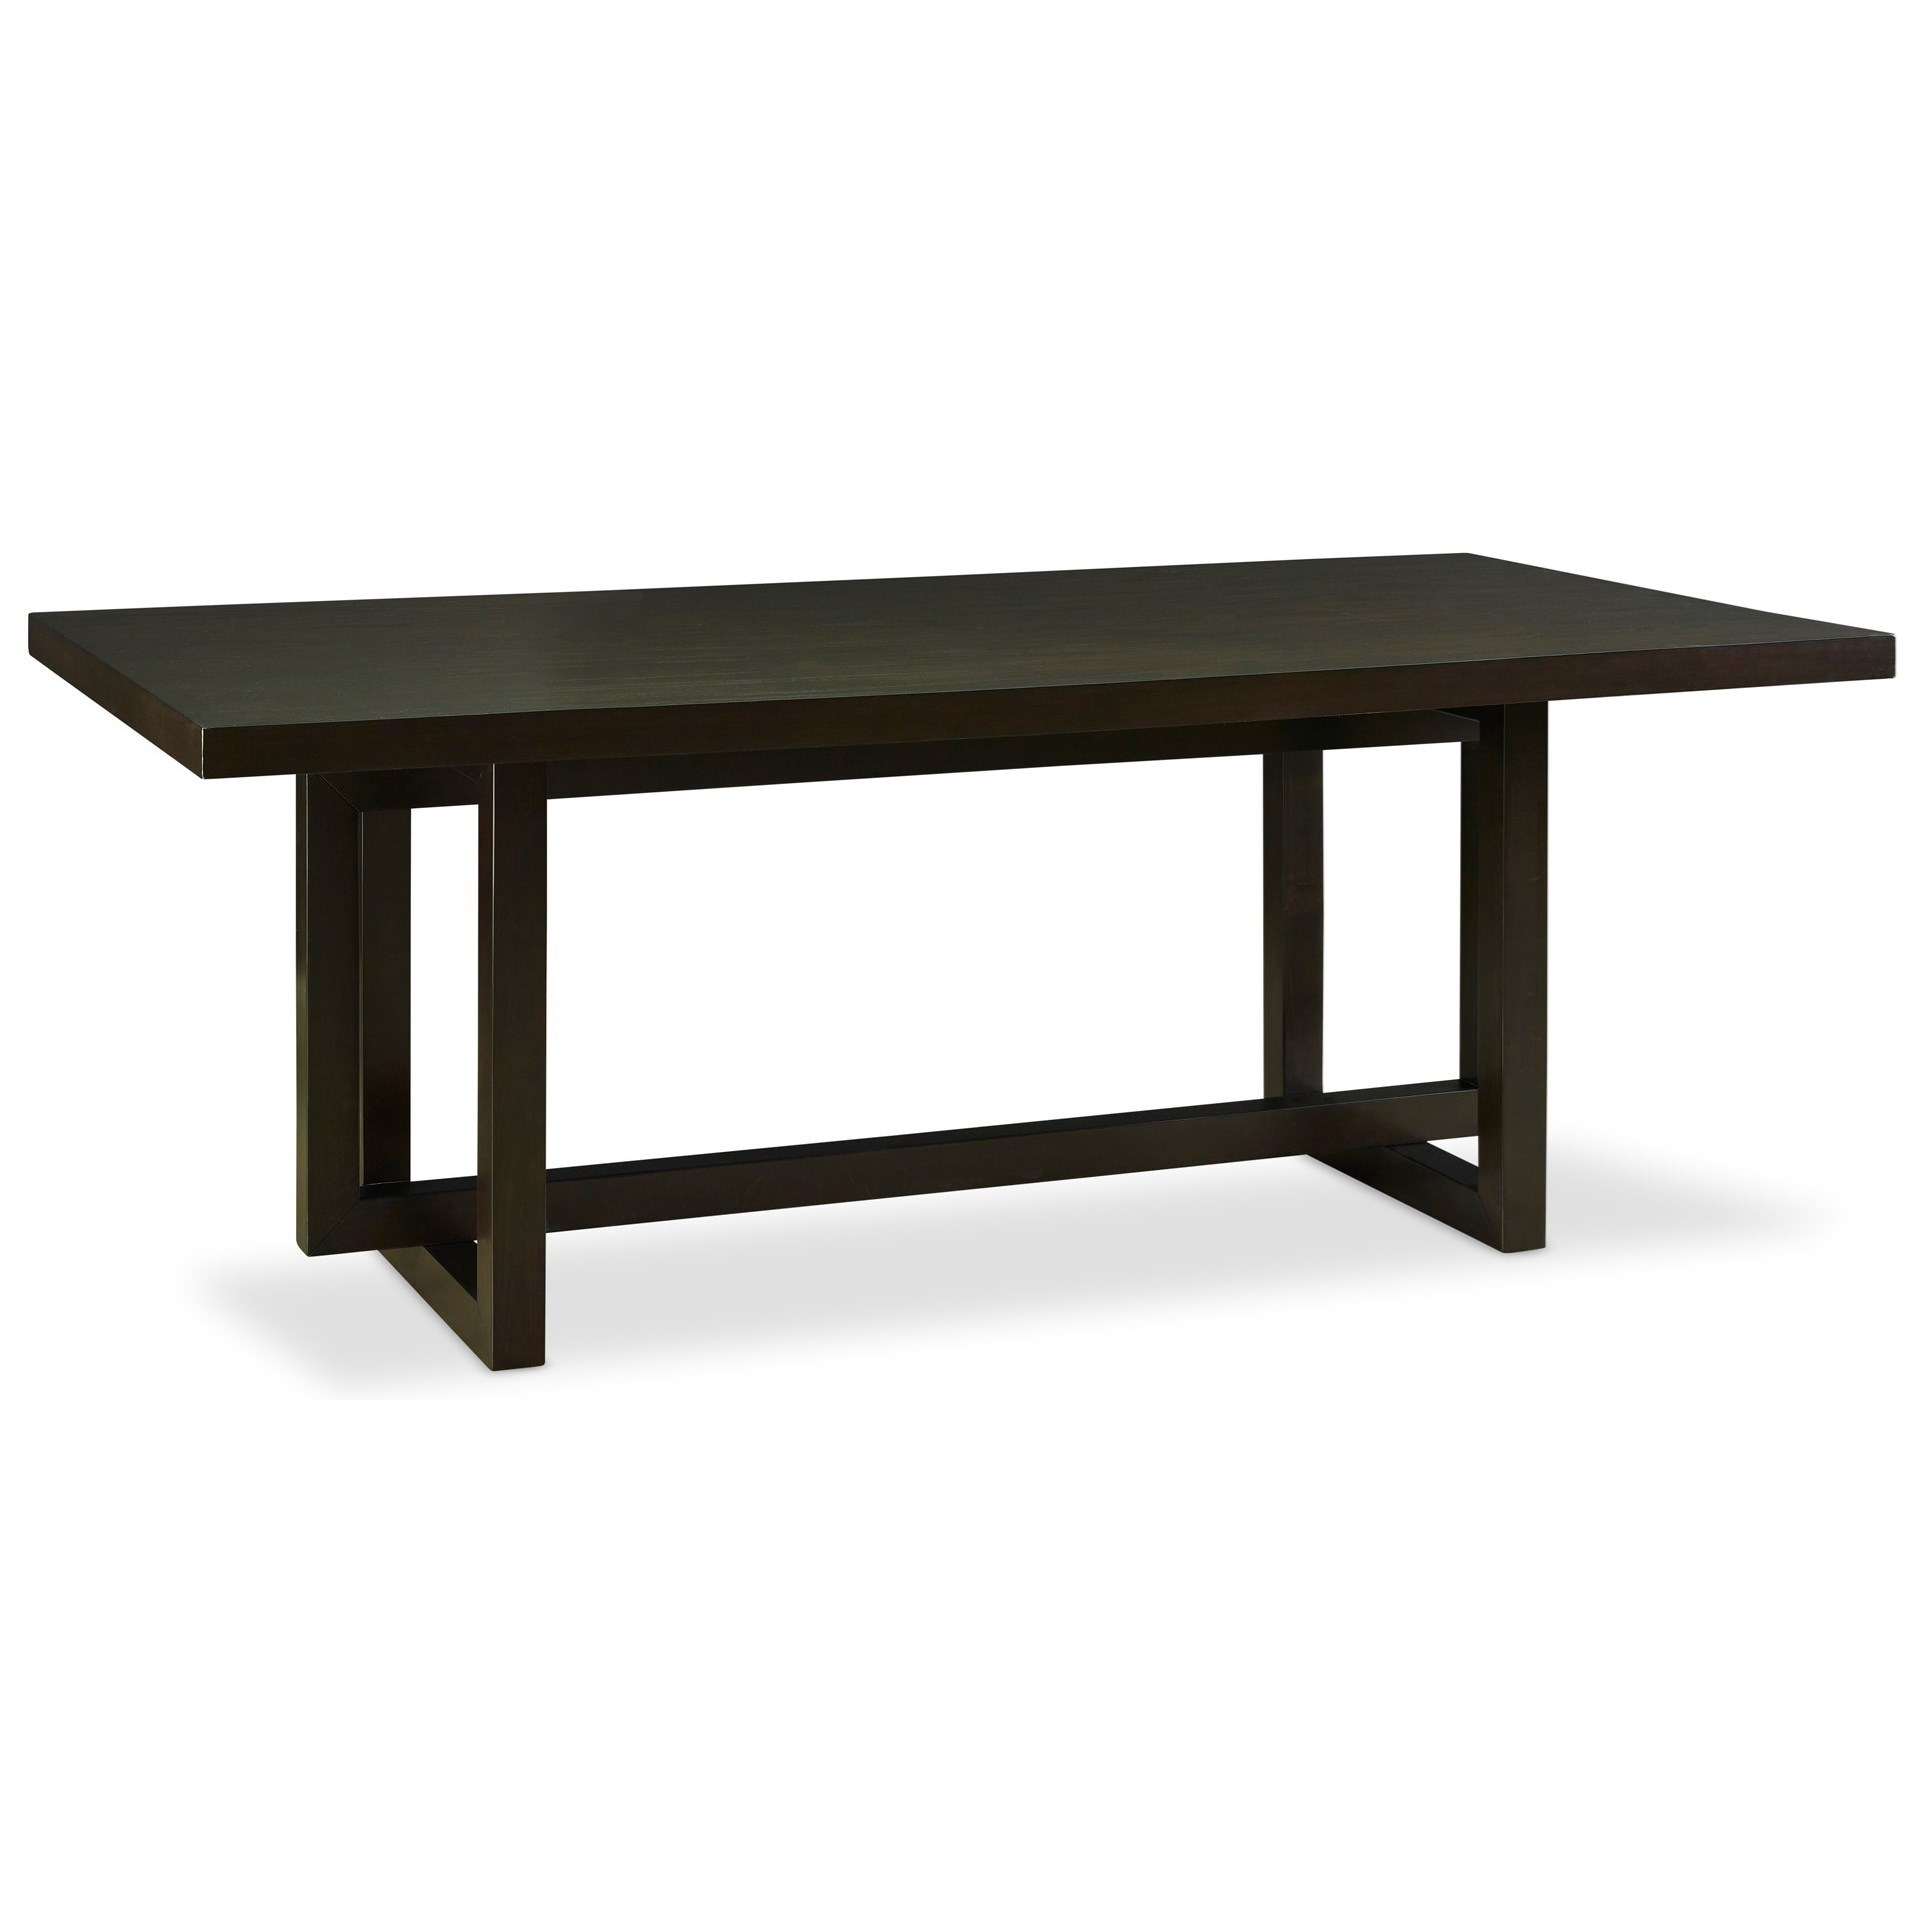 Legends Furniture Crosby StreetTrestle Table ...